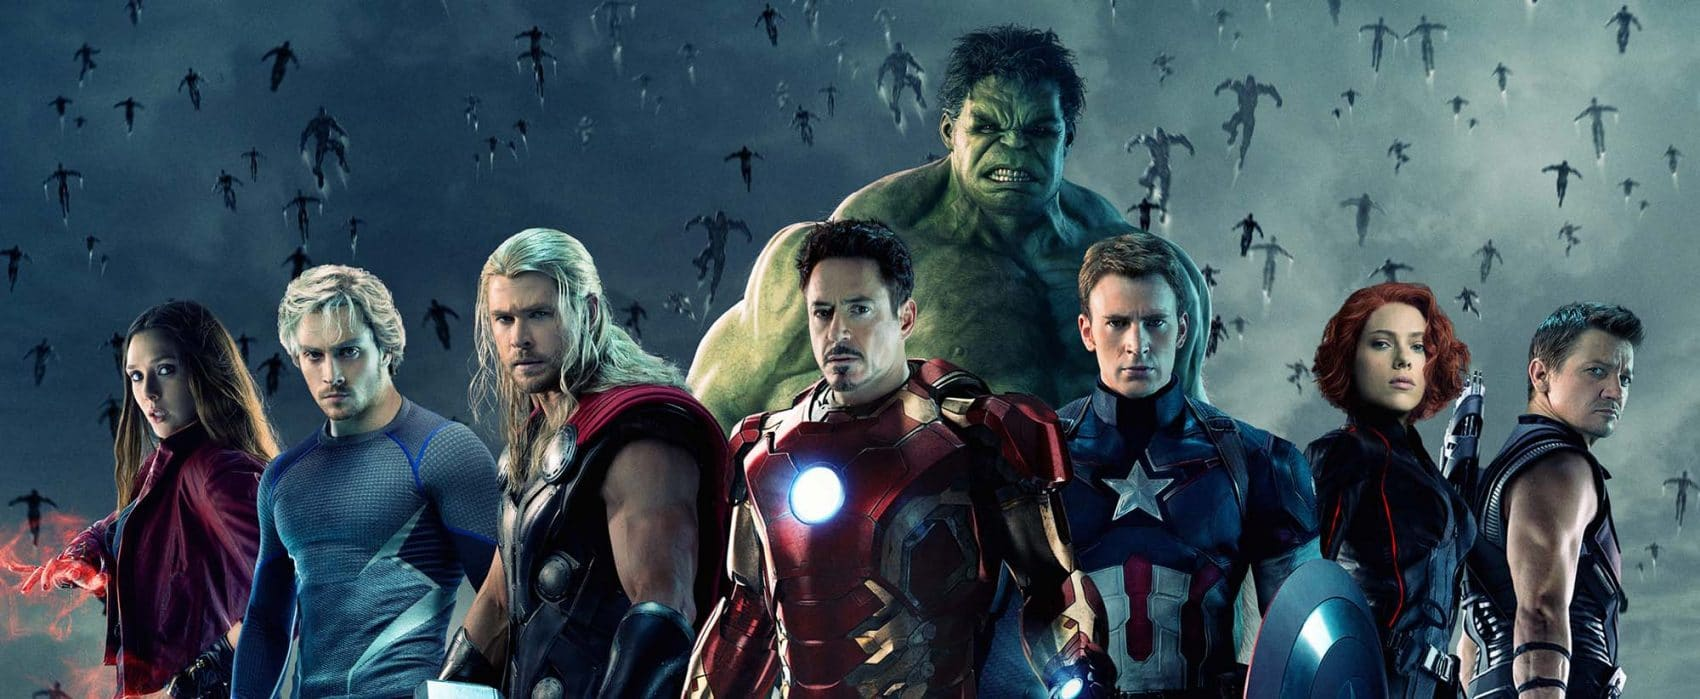 The Avengers 2 : Age of Ultron – Critique du film